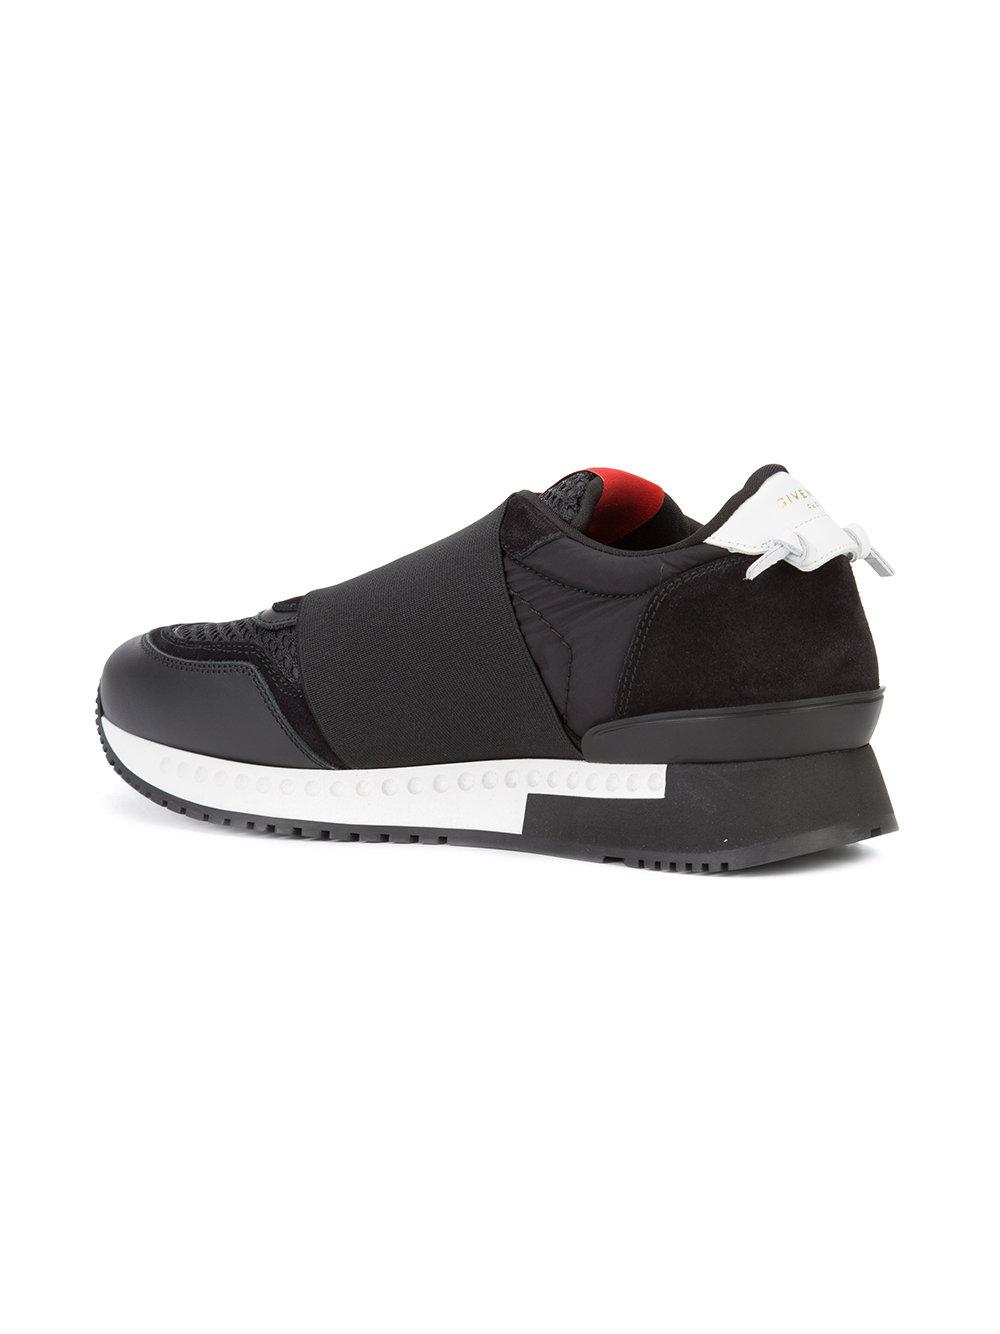 Givenchy Leather Runner Elastic Sneakers in Black